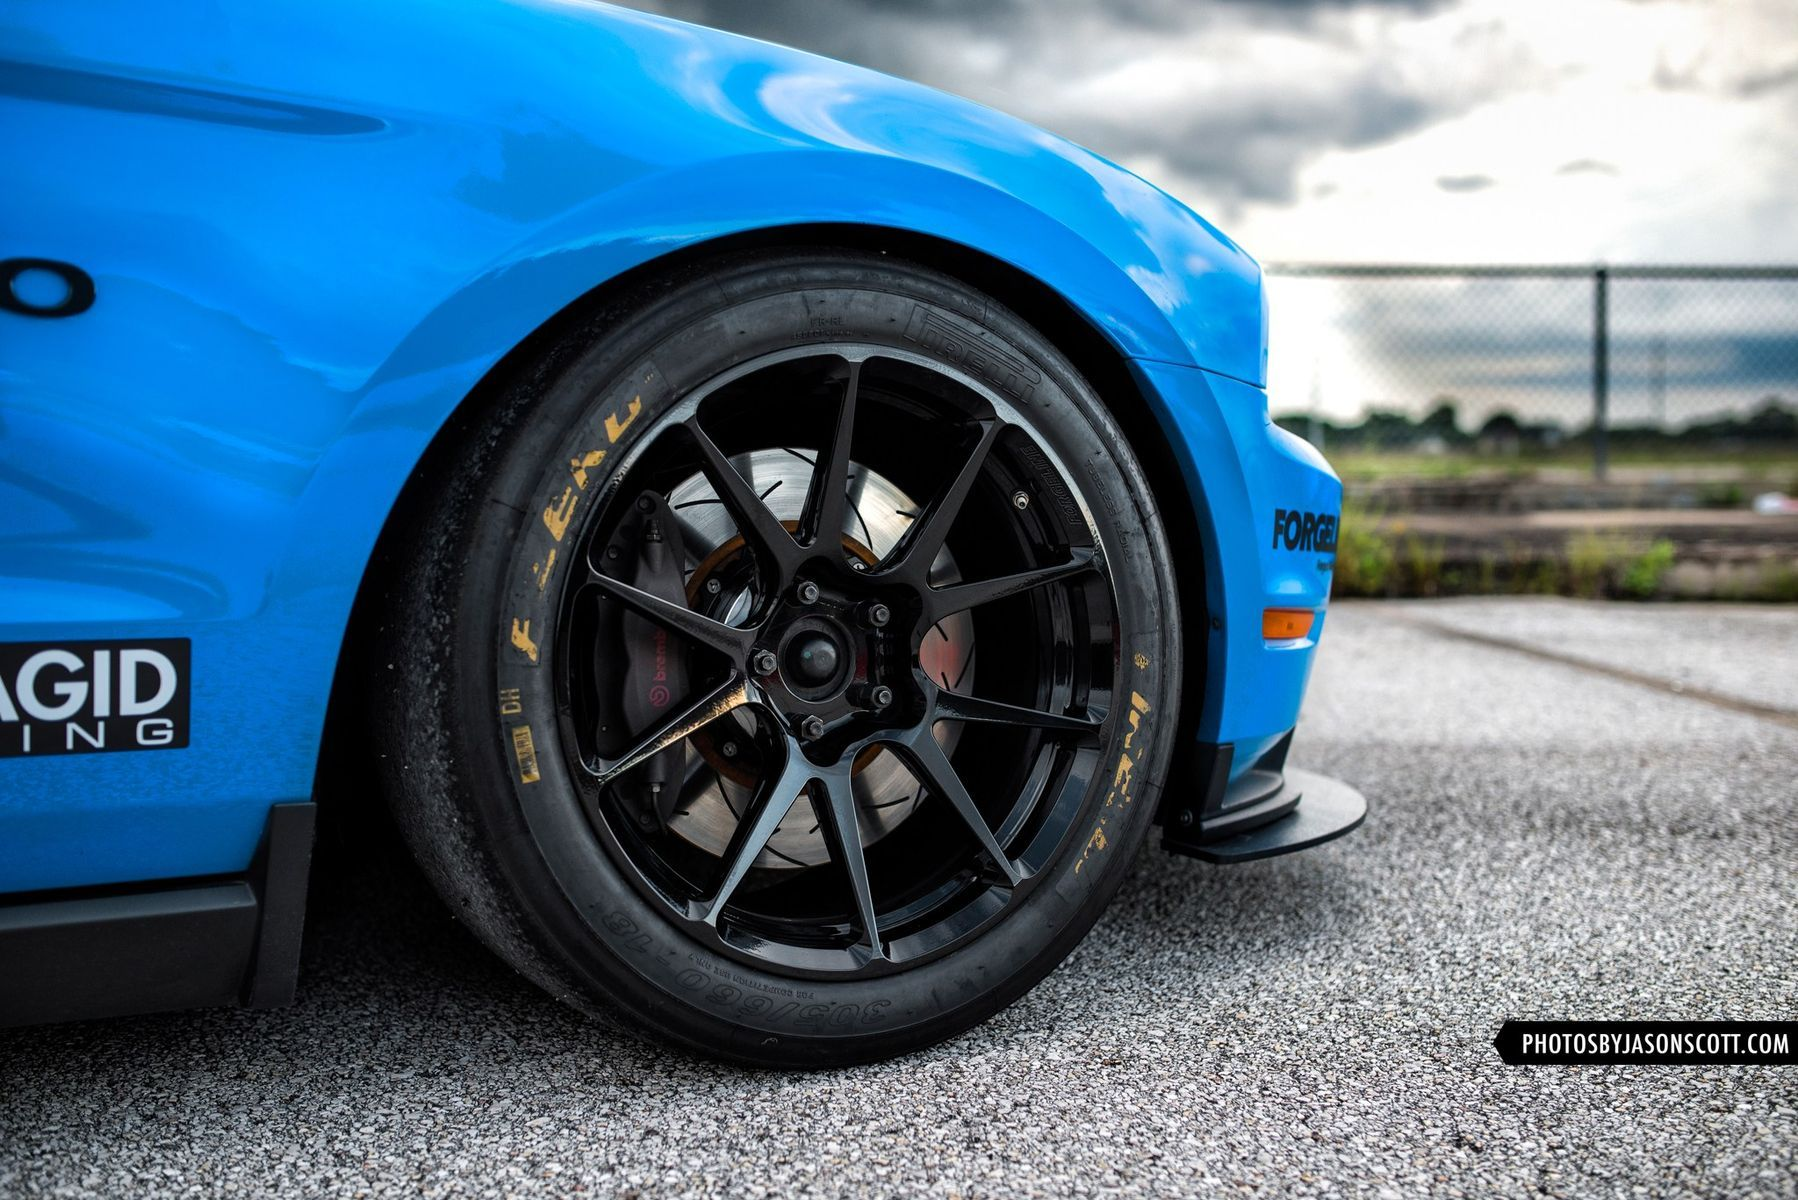 2011 Ford Mustang | Anthony Imperato's Grabber Blue S197 Mustang GT on Forgeline One Piece Forged Monoblock GS1R Wheels